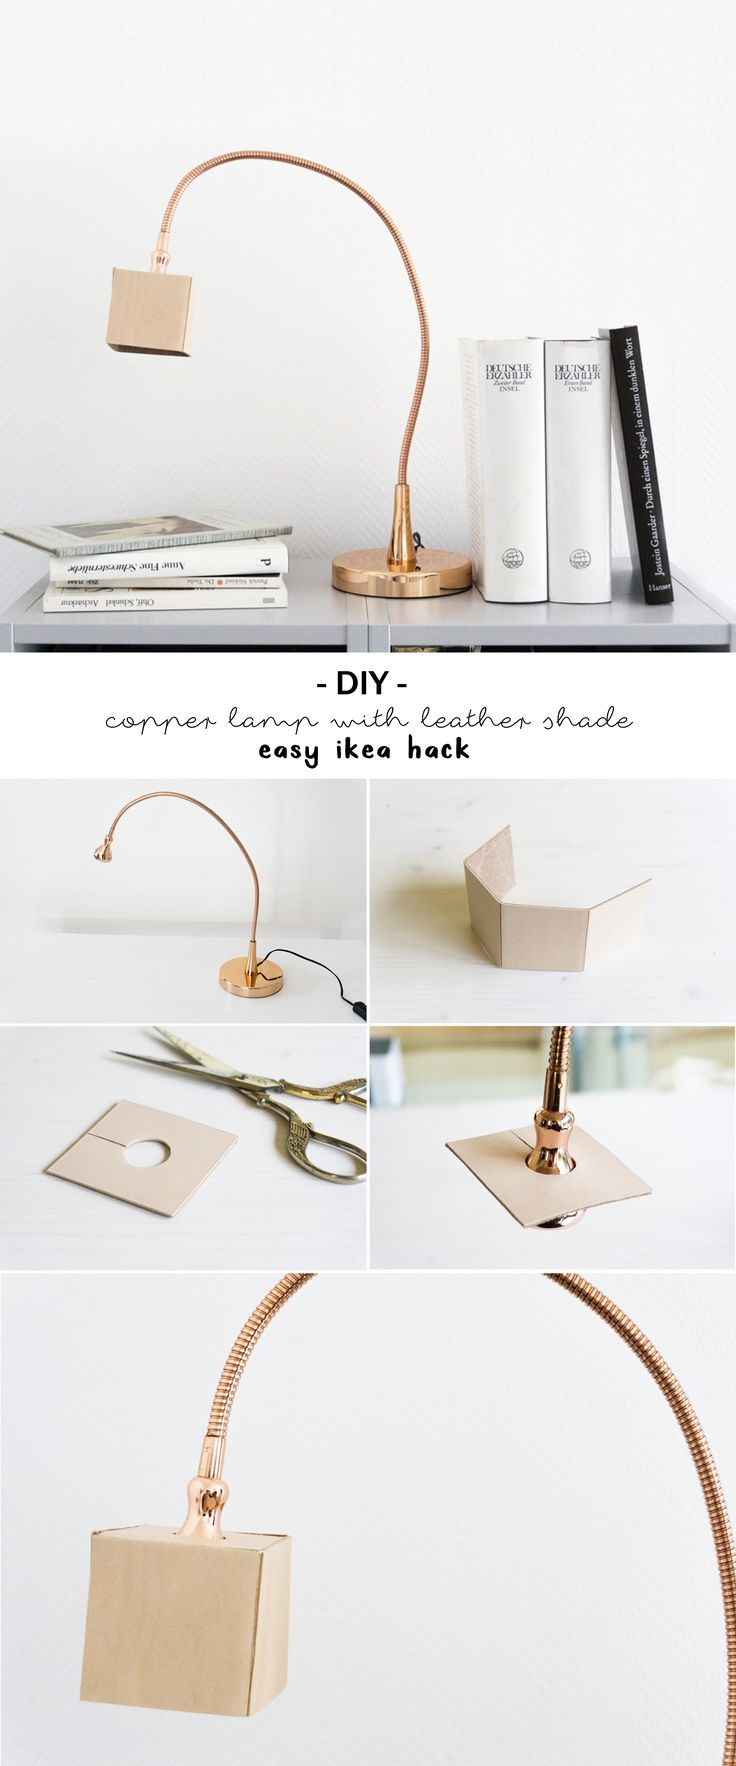 Do It Yourself Einrichtung 669 Best Do It Yourself Images On Pinterest | Blog